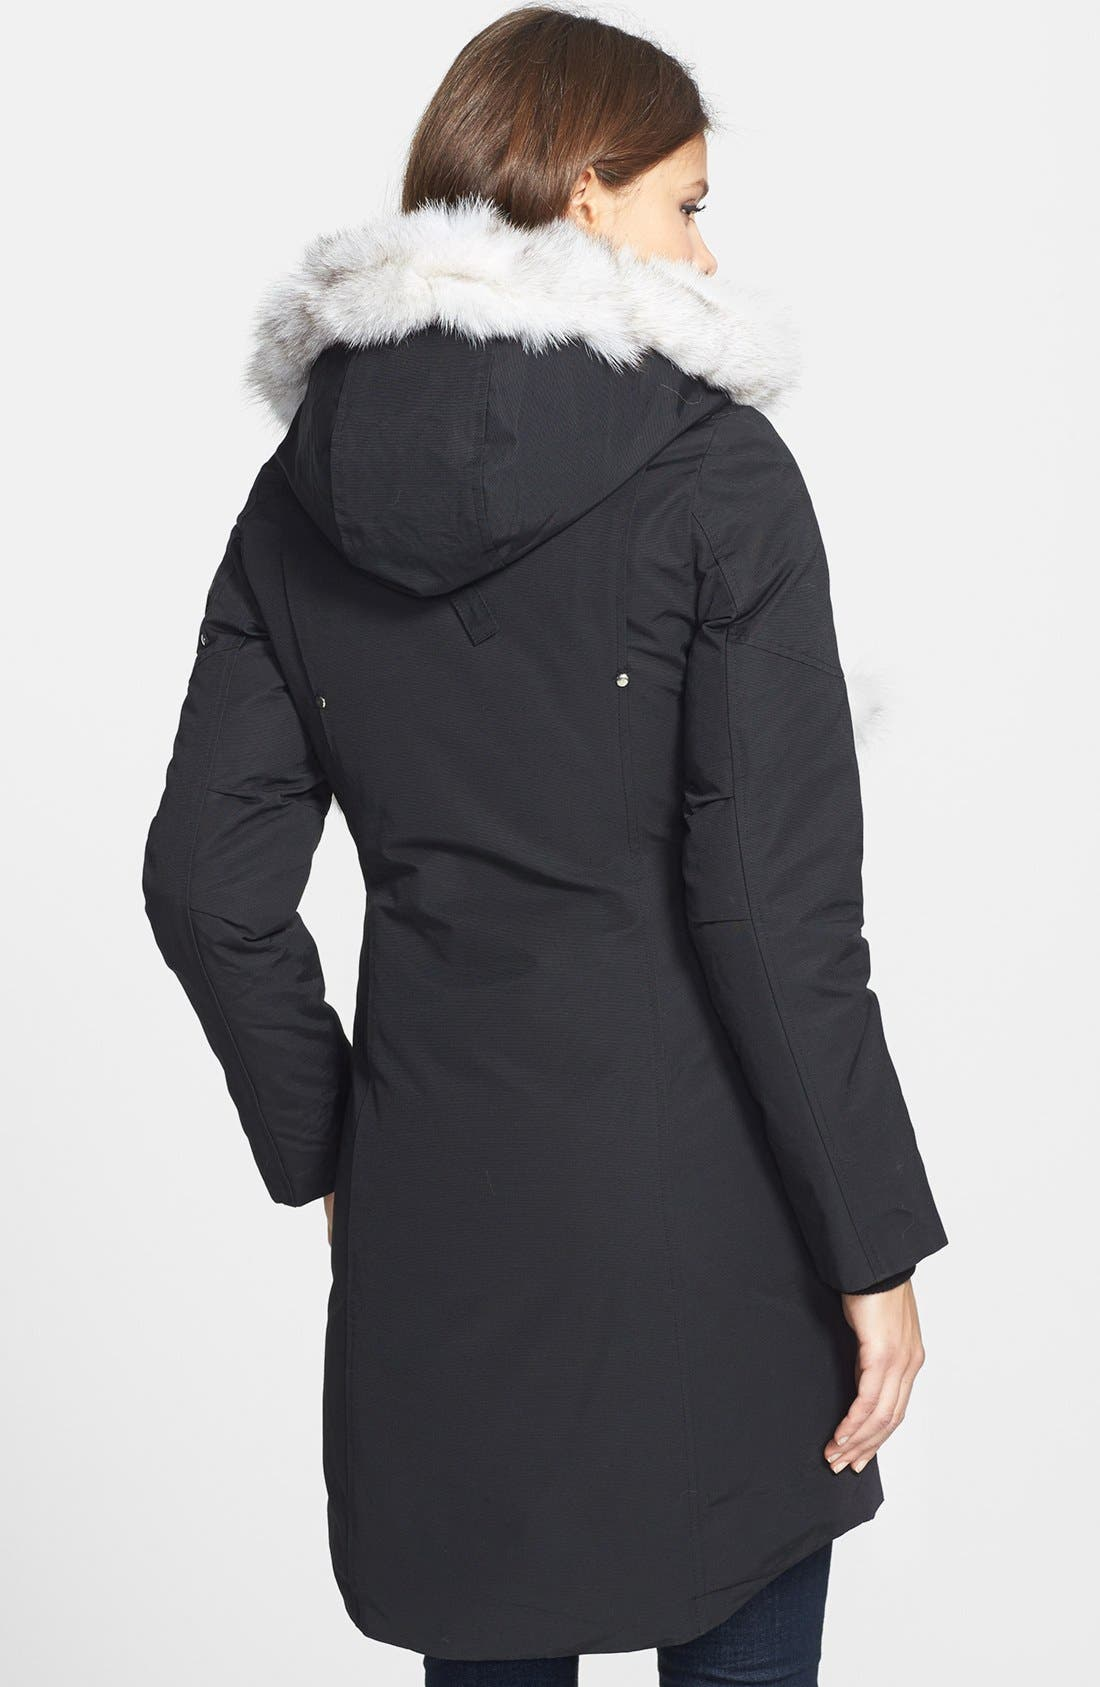 'Stirling' Down Parka with Genuine Fox Fur Trim,                             Alternate thumbnail 13, color,                             BLACK/ WHITE FUR